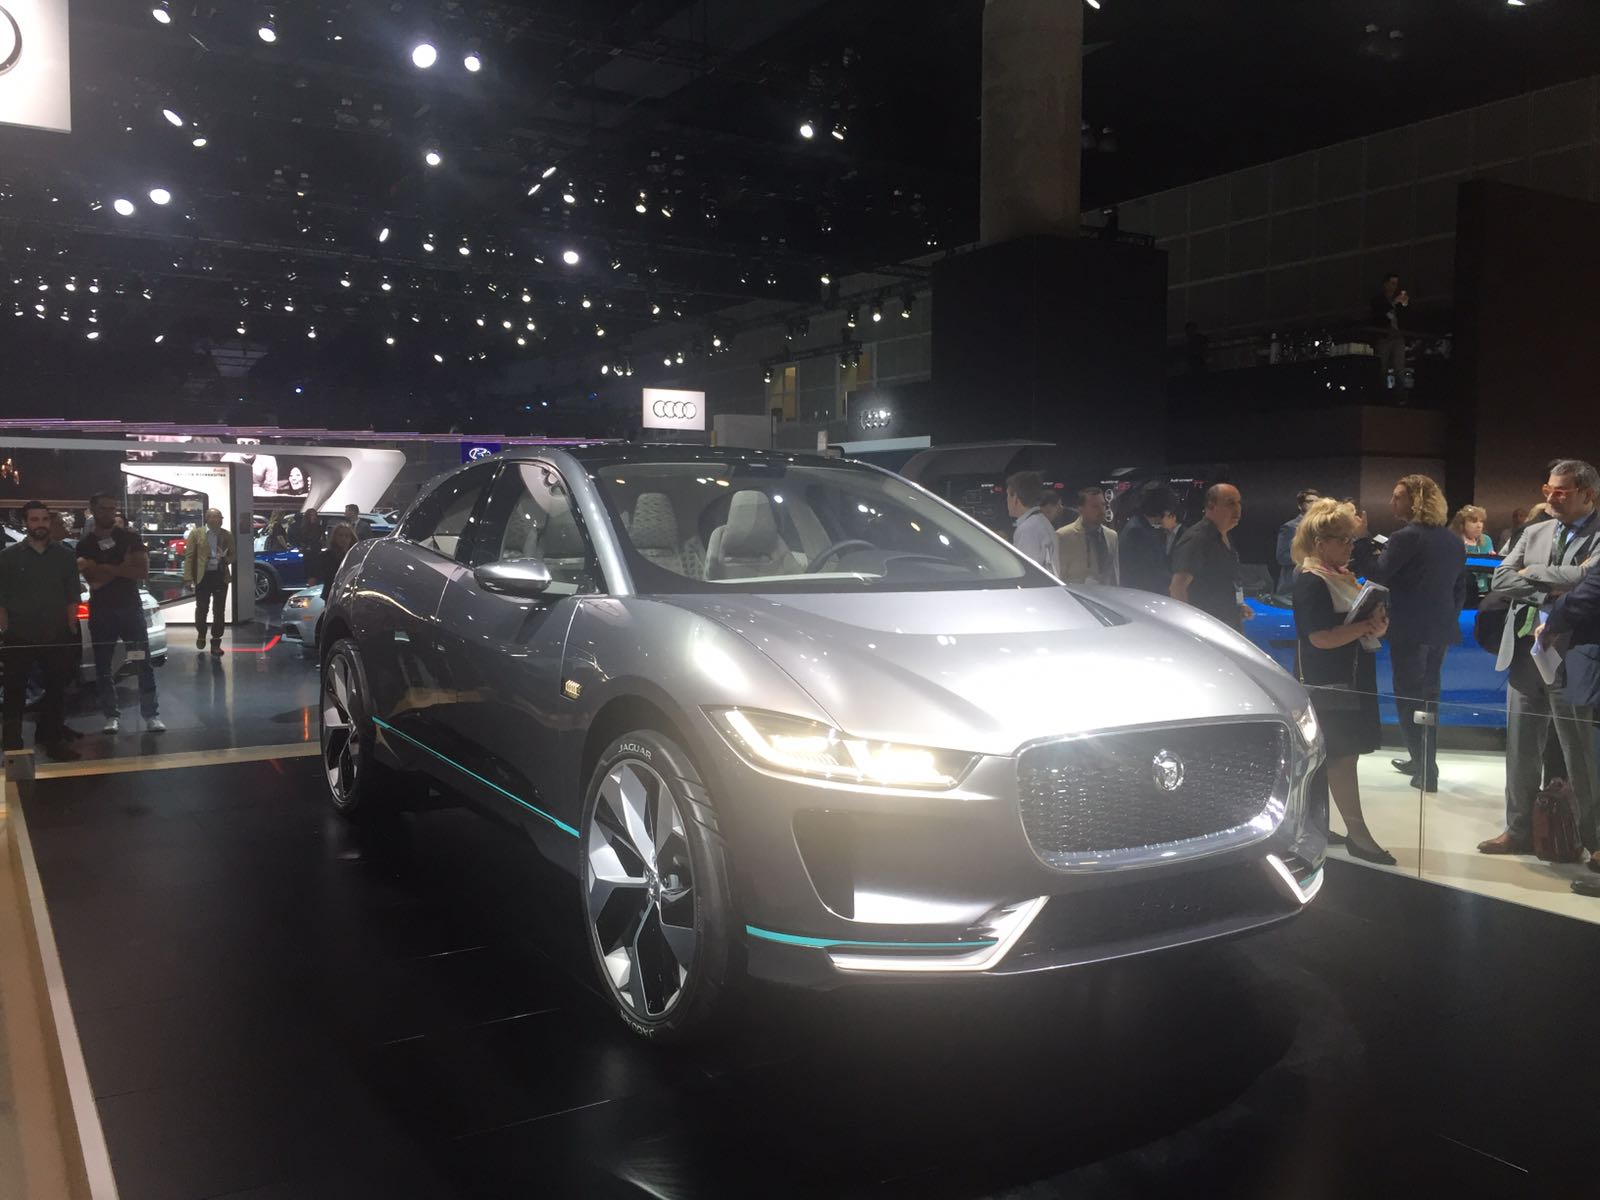 Another view on the Jaguar I-PACE Concept.